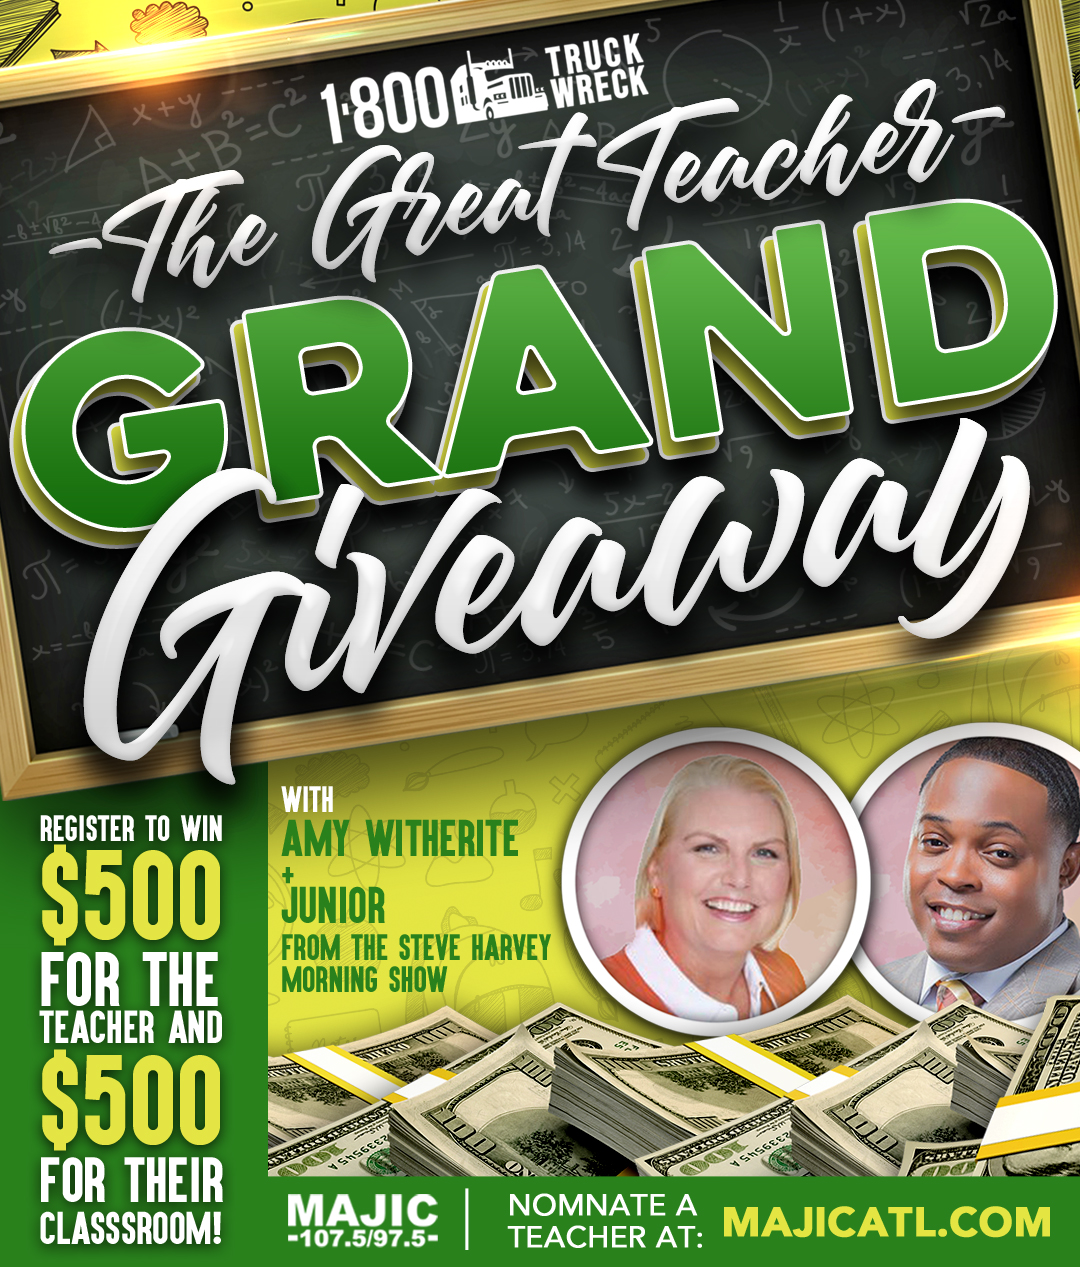 The Great Grand Teacher Giveaway